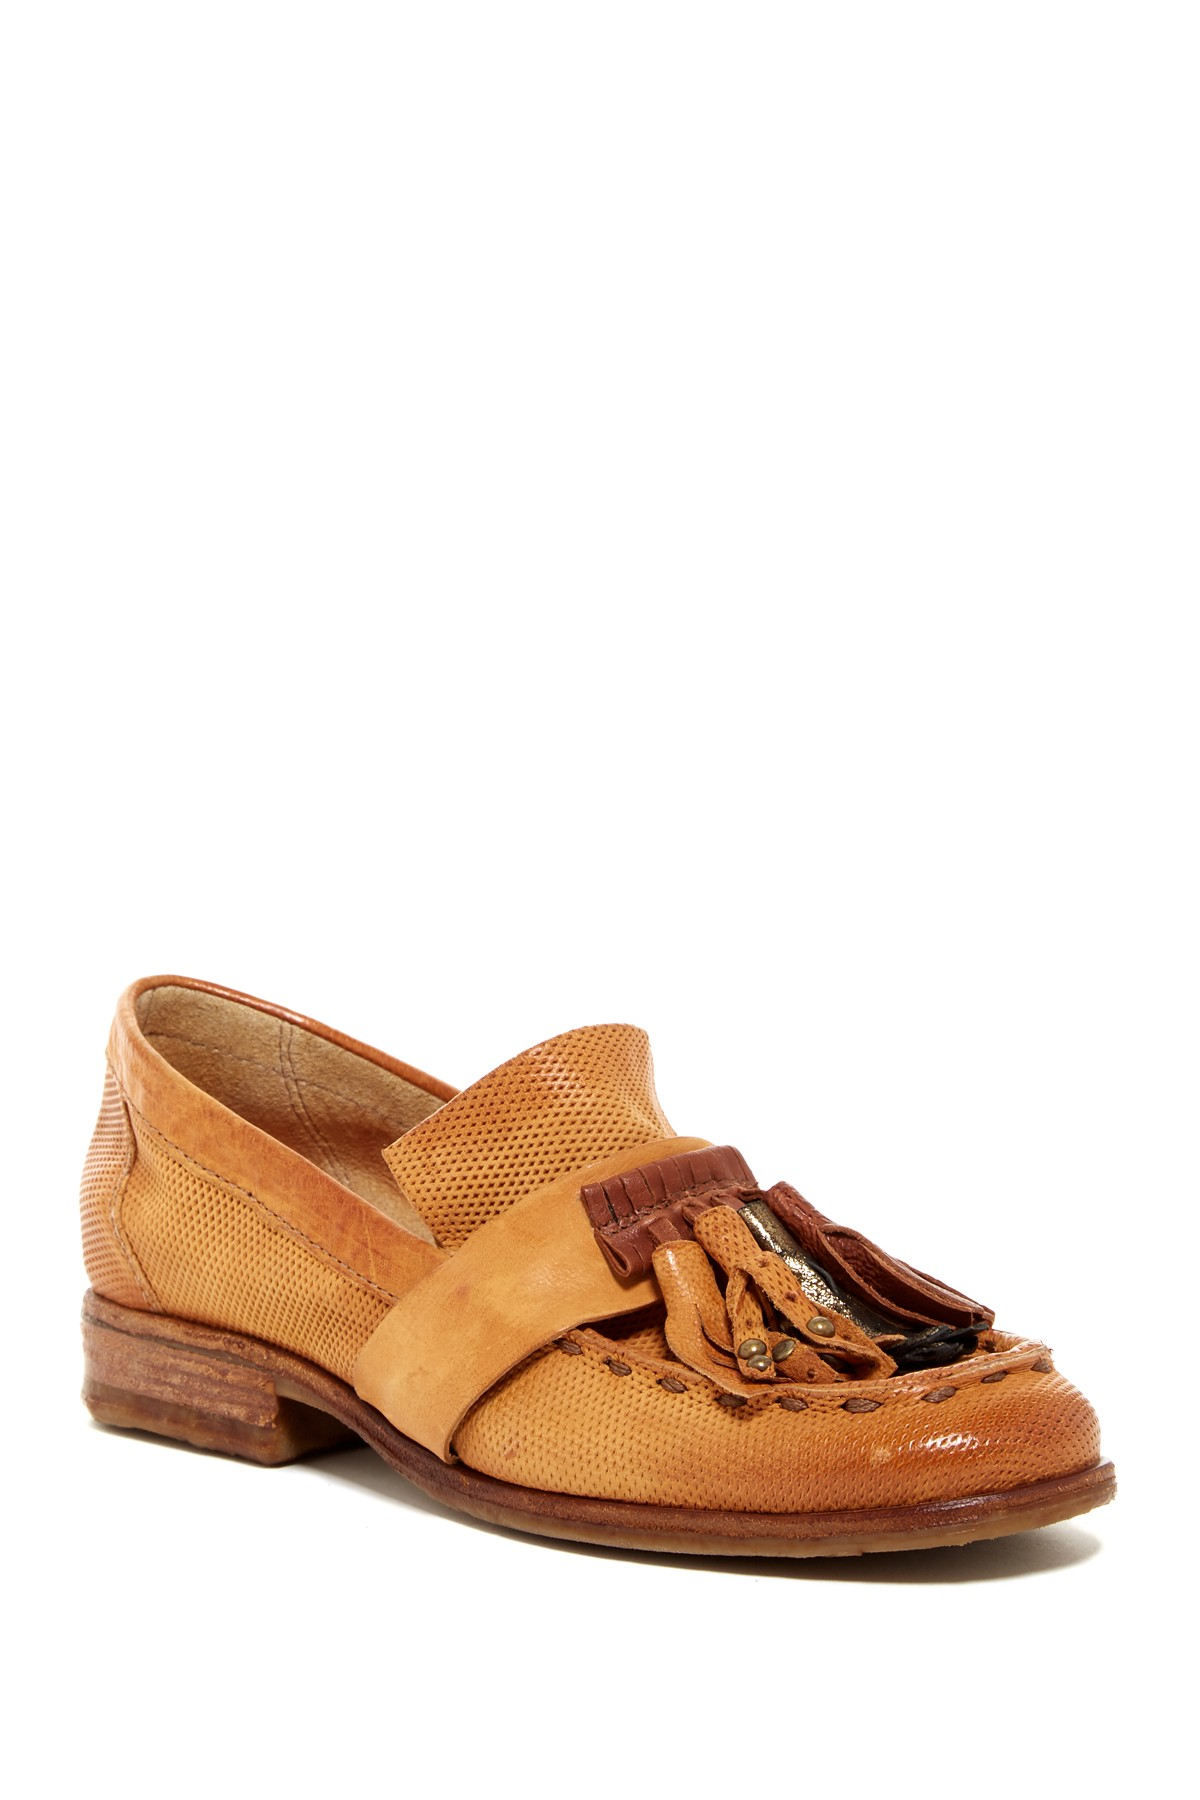 A.s.98 Clyde Tassel Loafer in Brown (CUOIO)